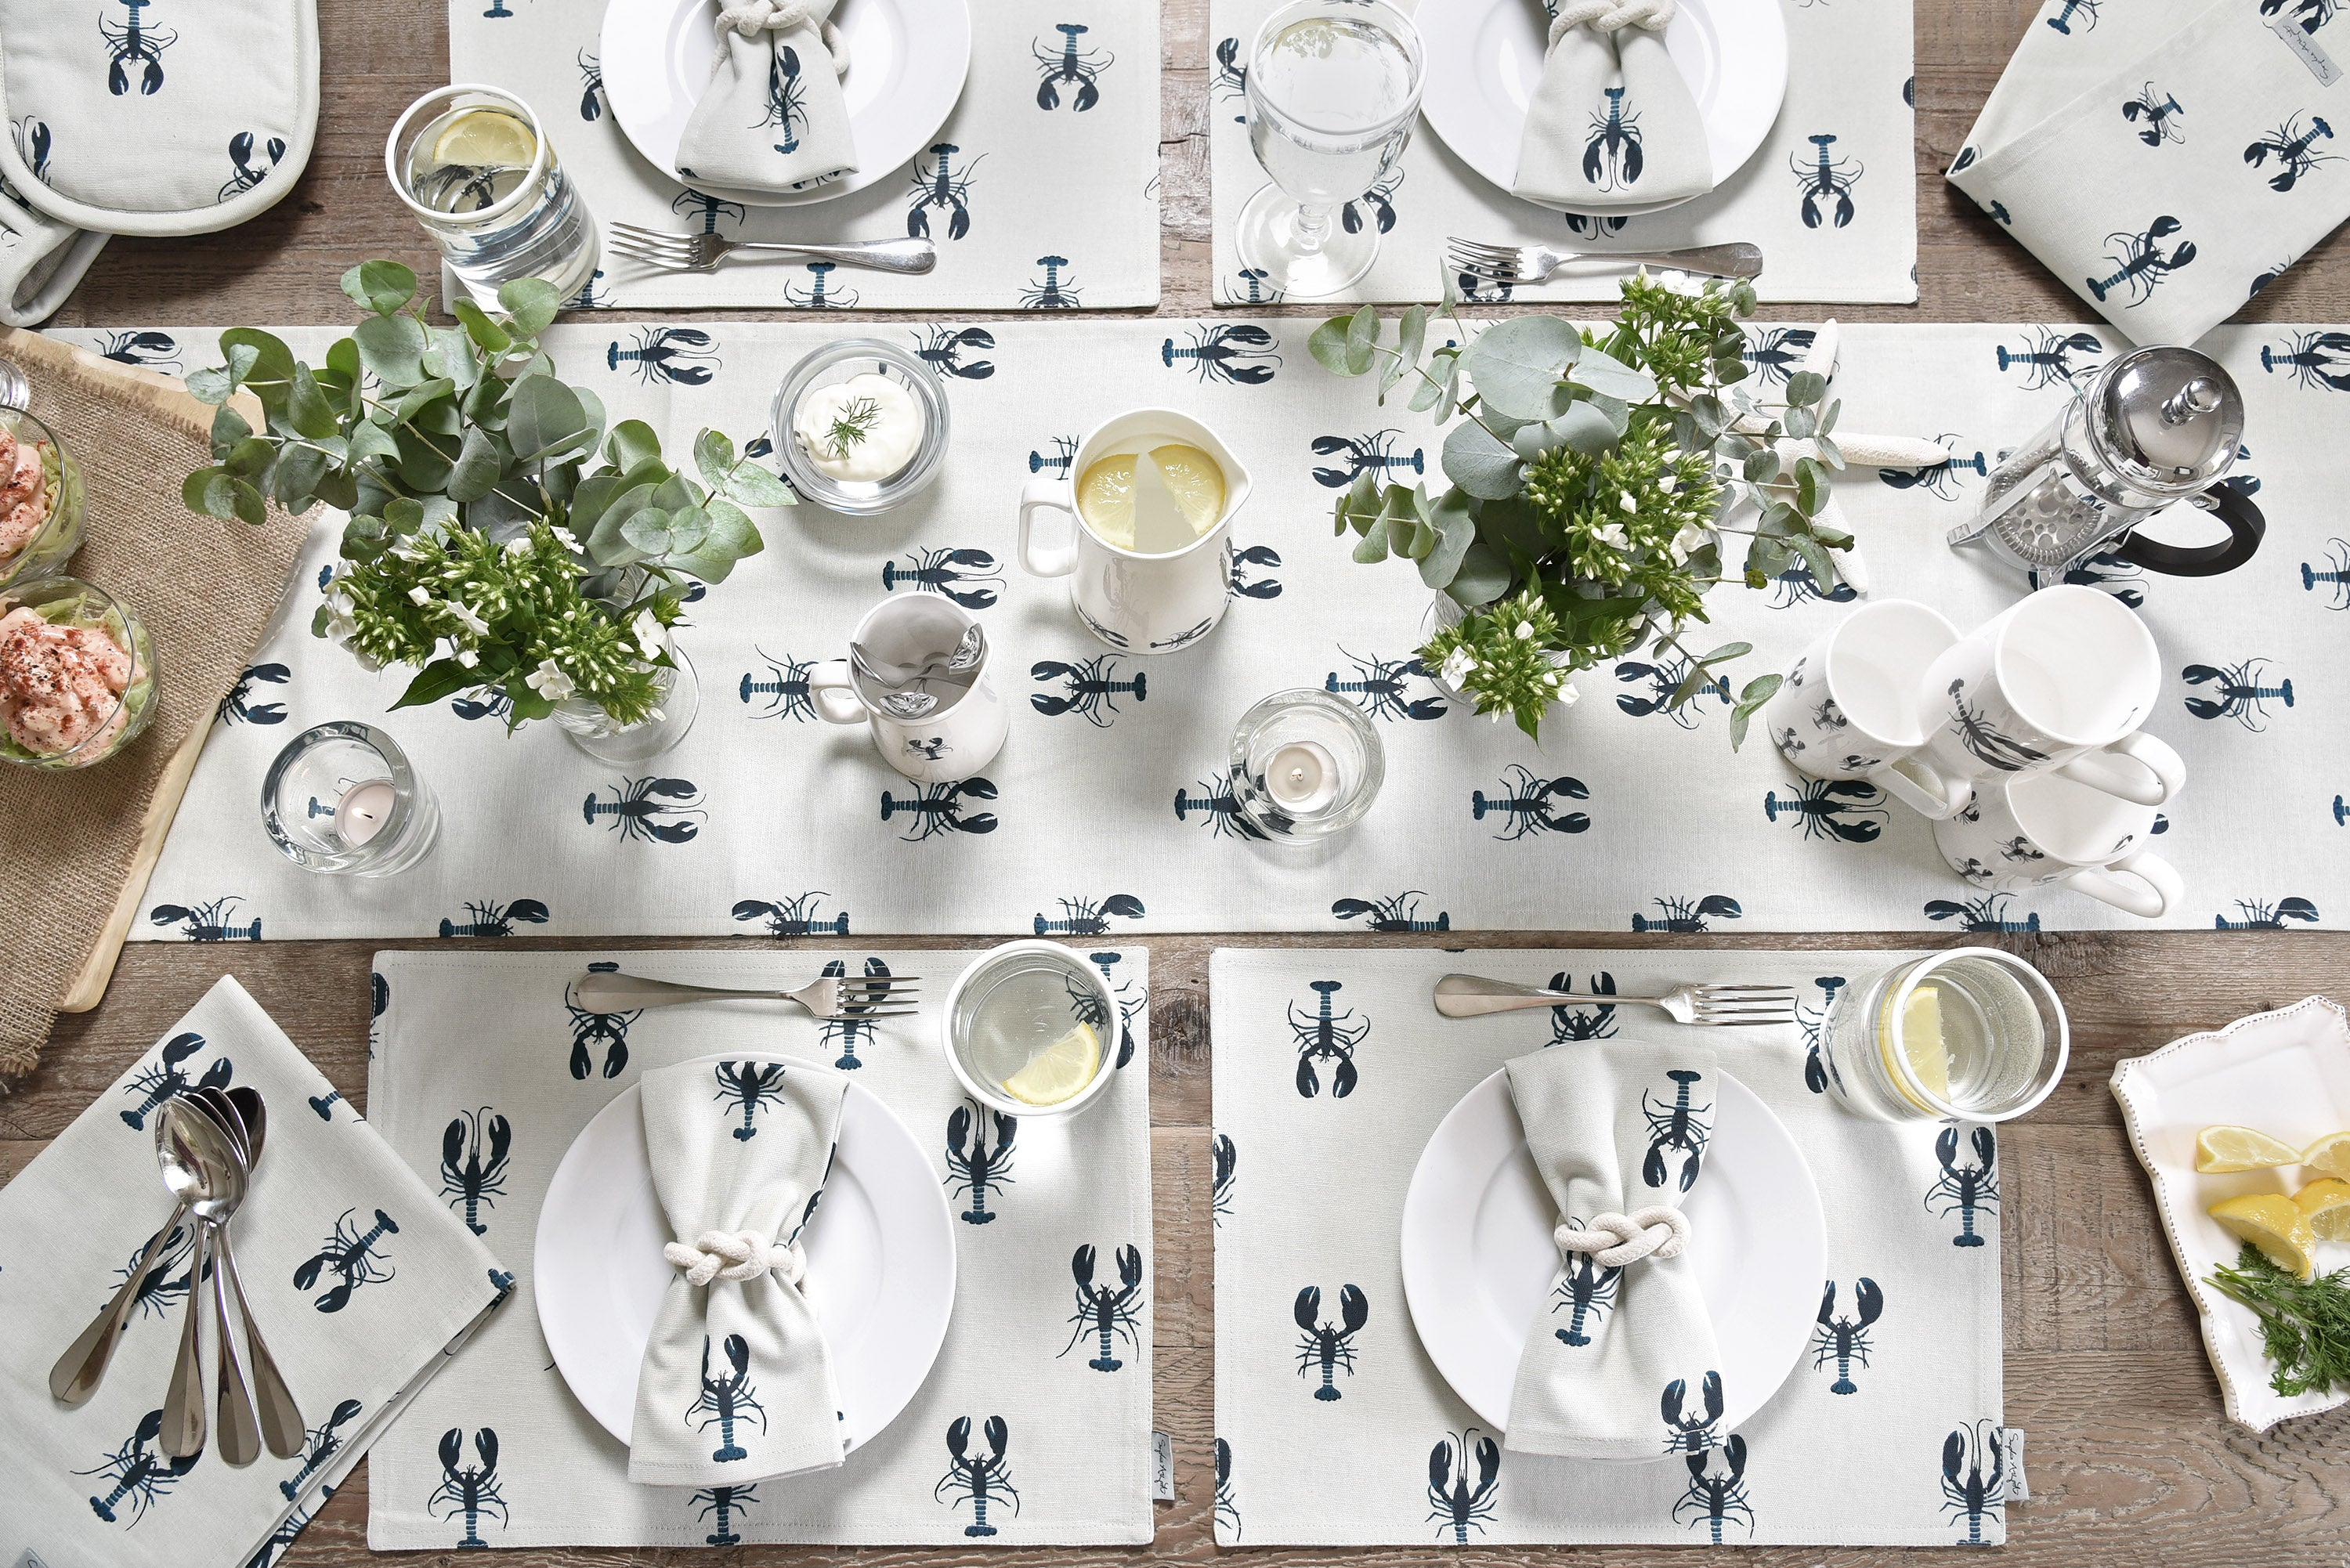 Summer table setting by Sophie Allport